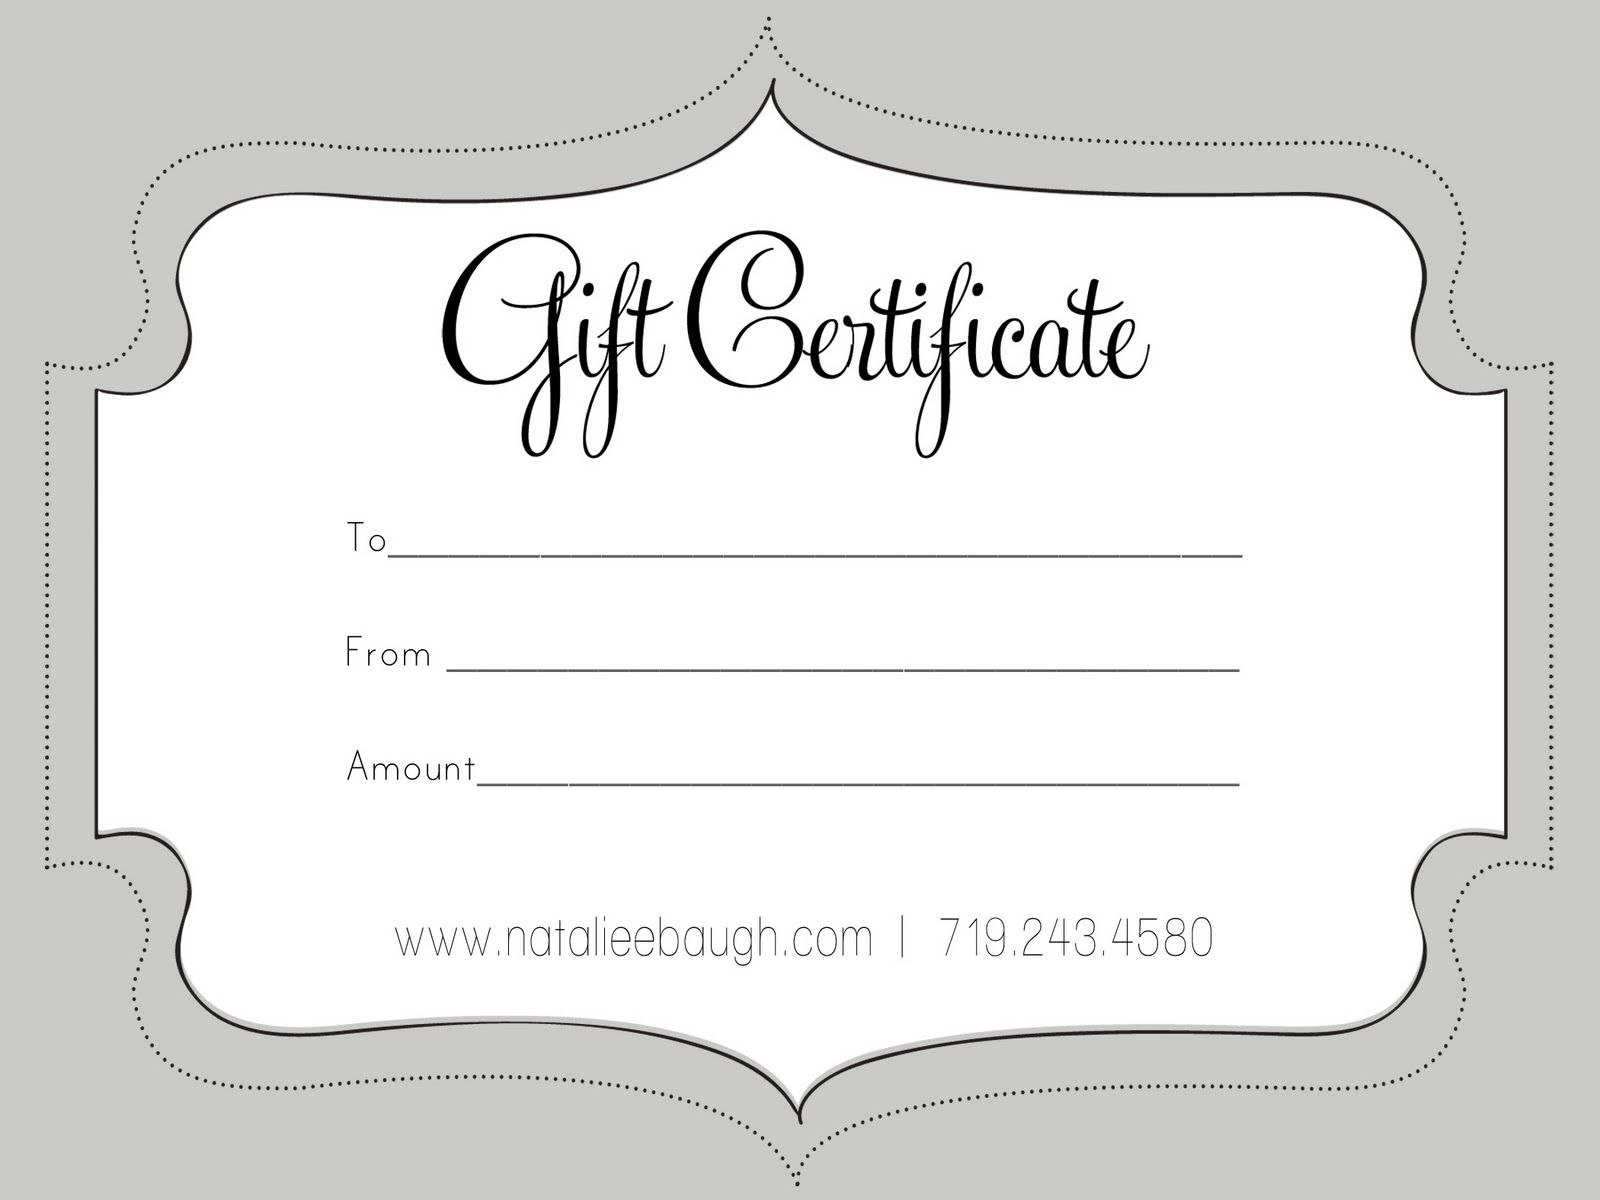 A Cute Looking Gift Certificate  S P A  Gift Certificate Template In Black And White Gift Certificate Template Free